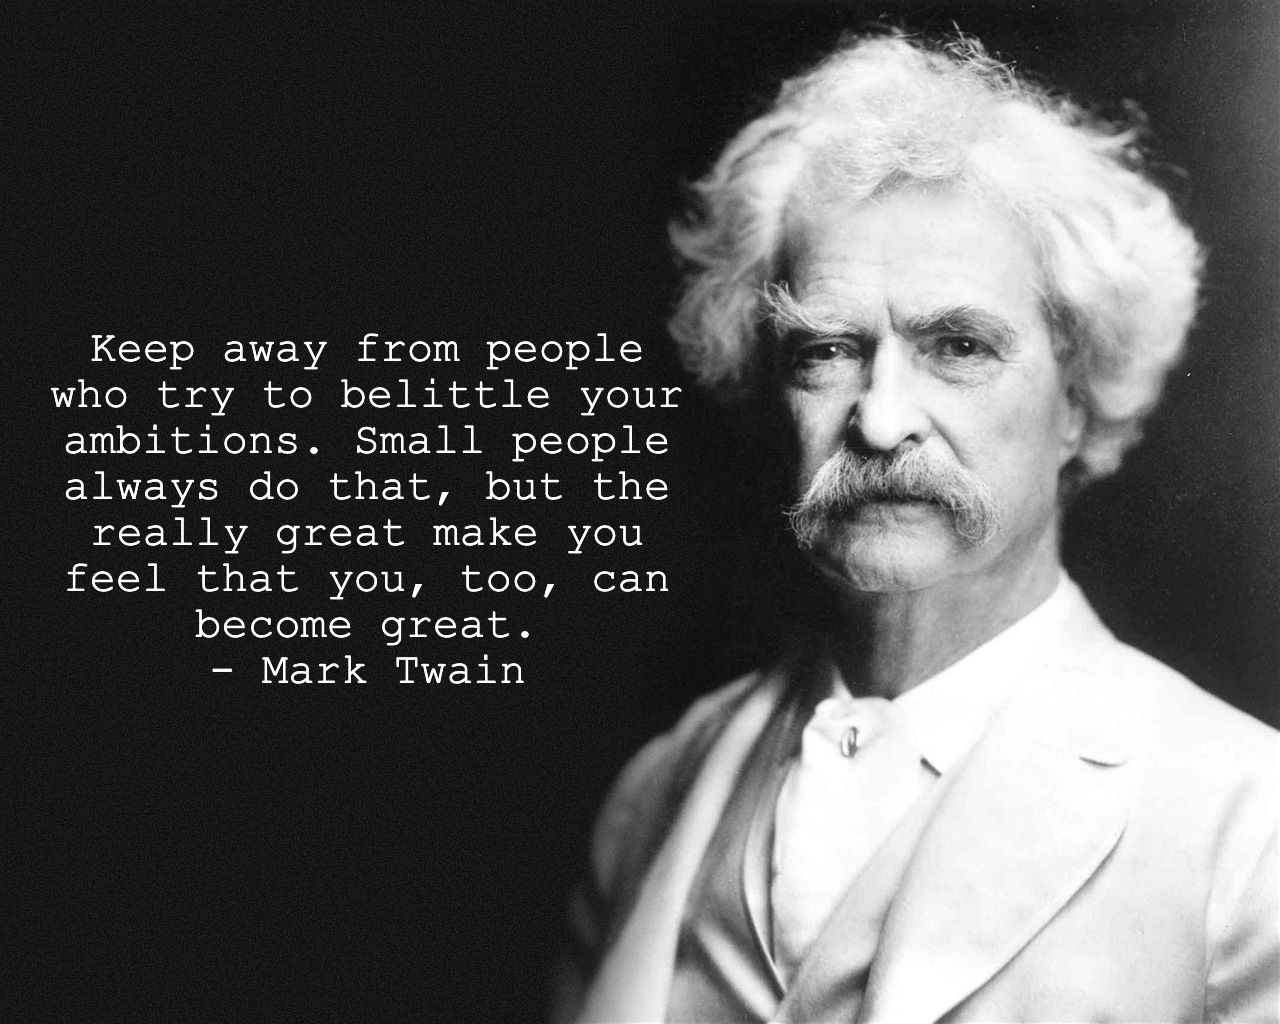 Keep away from people who try to belittle your ambitions. Small people always do that, but the really great make you feel that you, too, can become great. – Mark Twain [1280 × 1024]